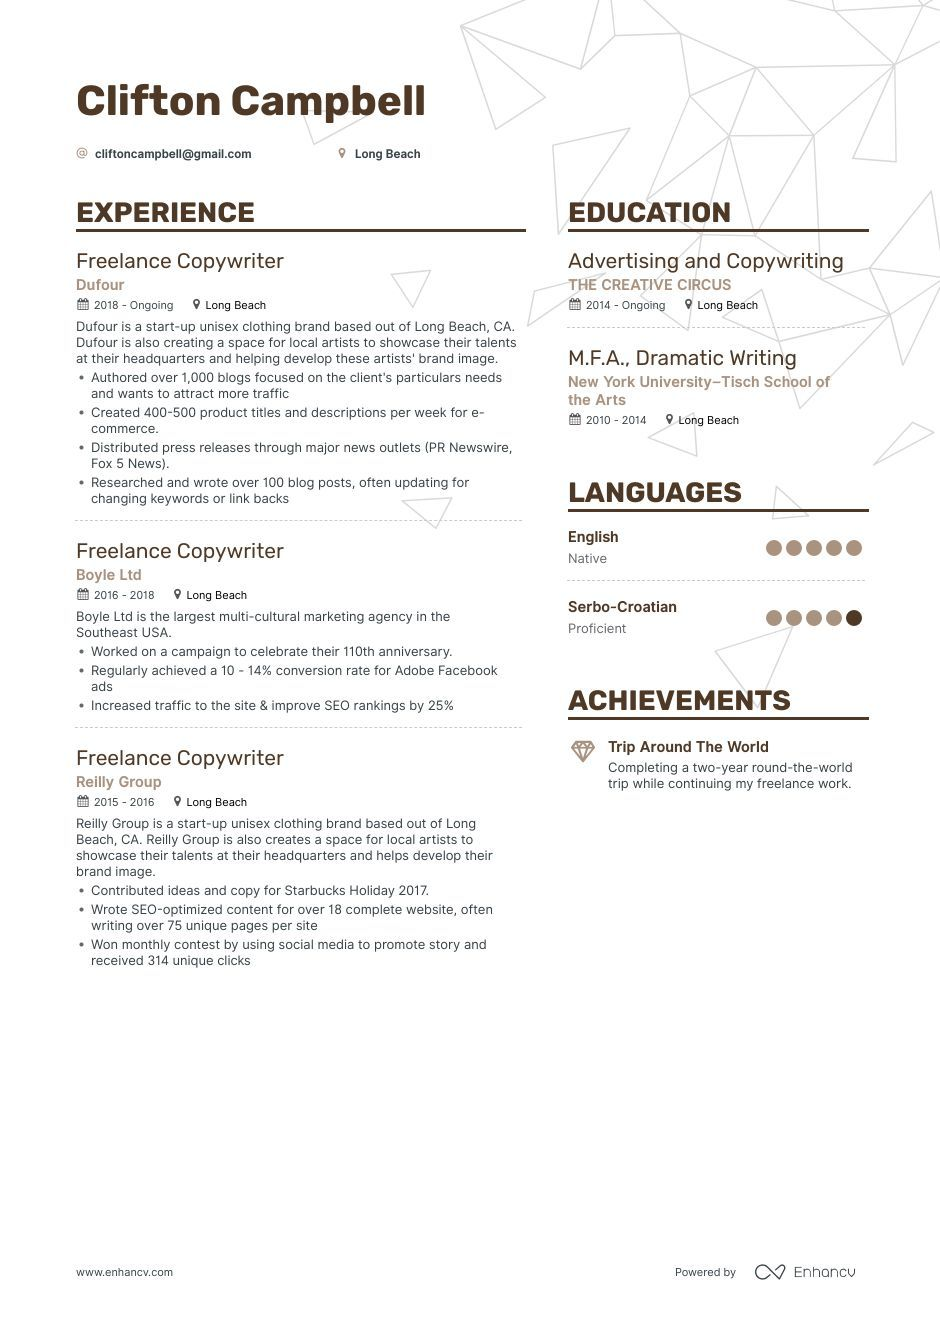 Freelance Copywriter Resume Example And Guide For 2019 Resume Examples Good Resume Examples Resume